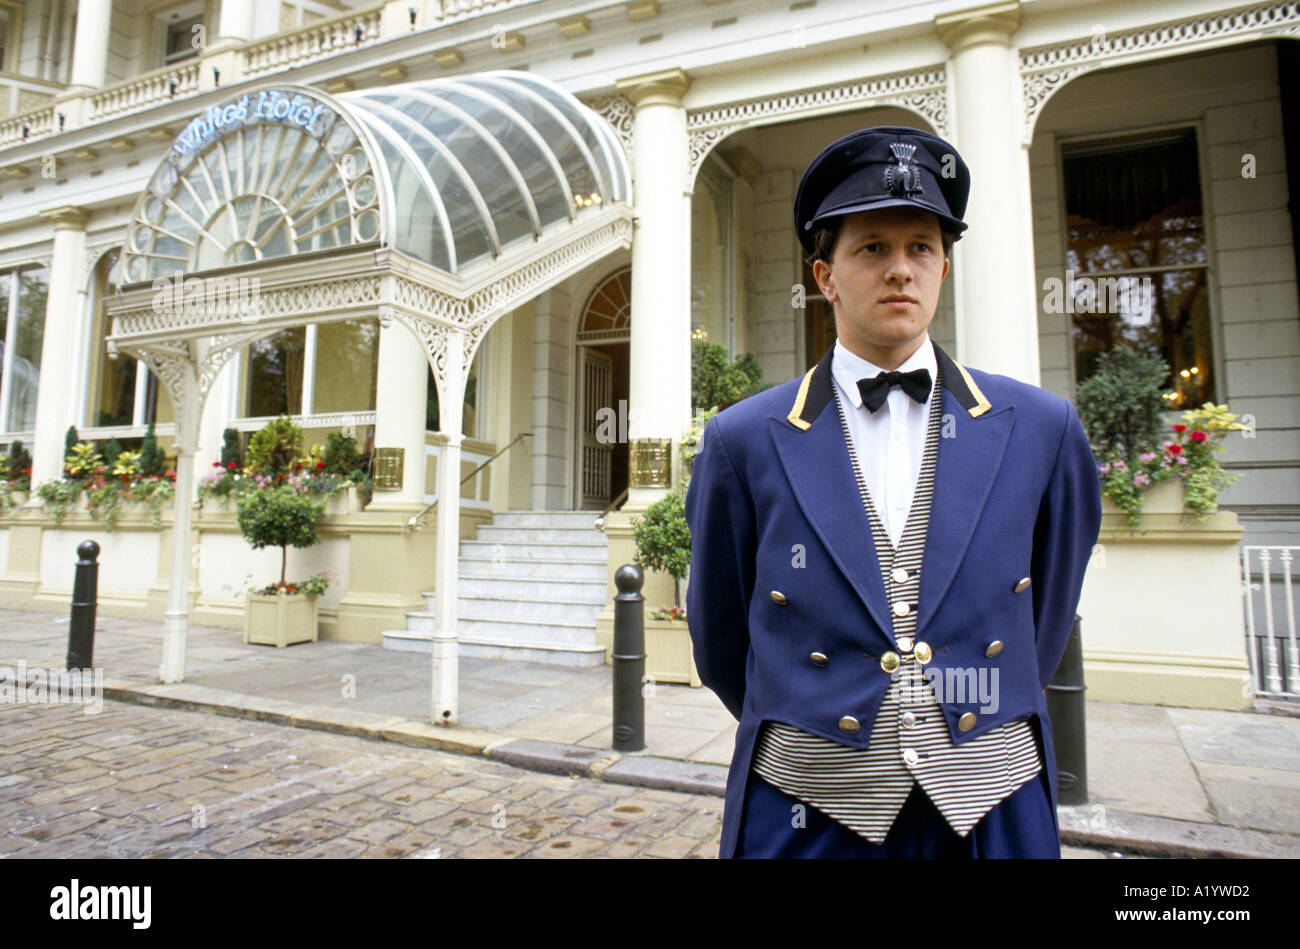 London Hotel Doorman Stock Photos u0026 London Hotel Doorman Stock .  sc 1 st  novelas.us : savoy doorman - pezcame.com